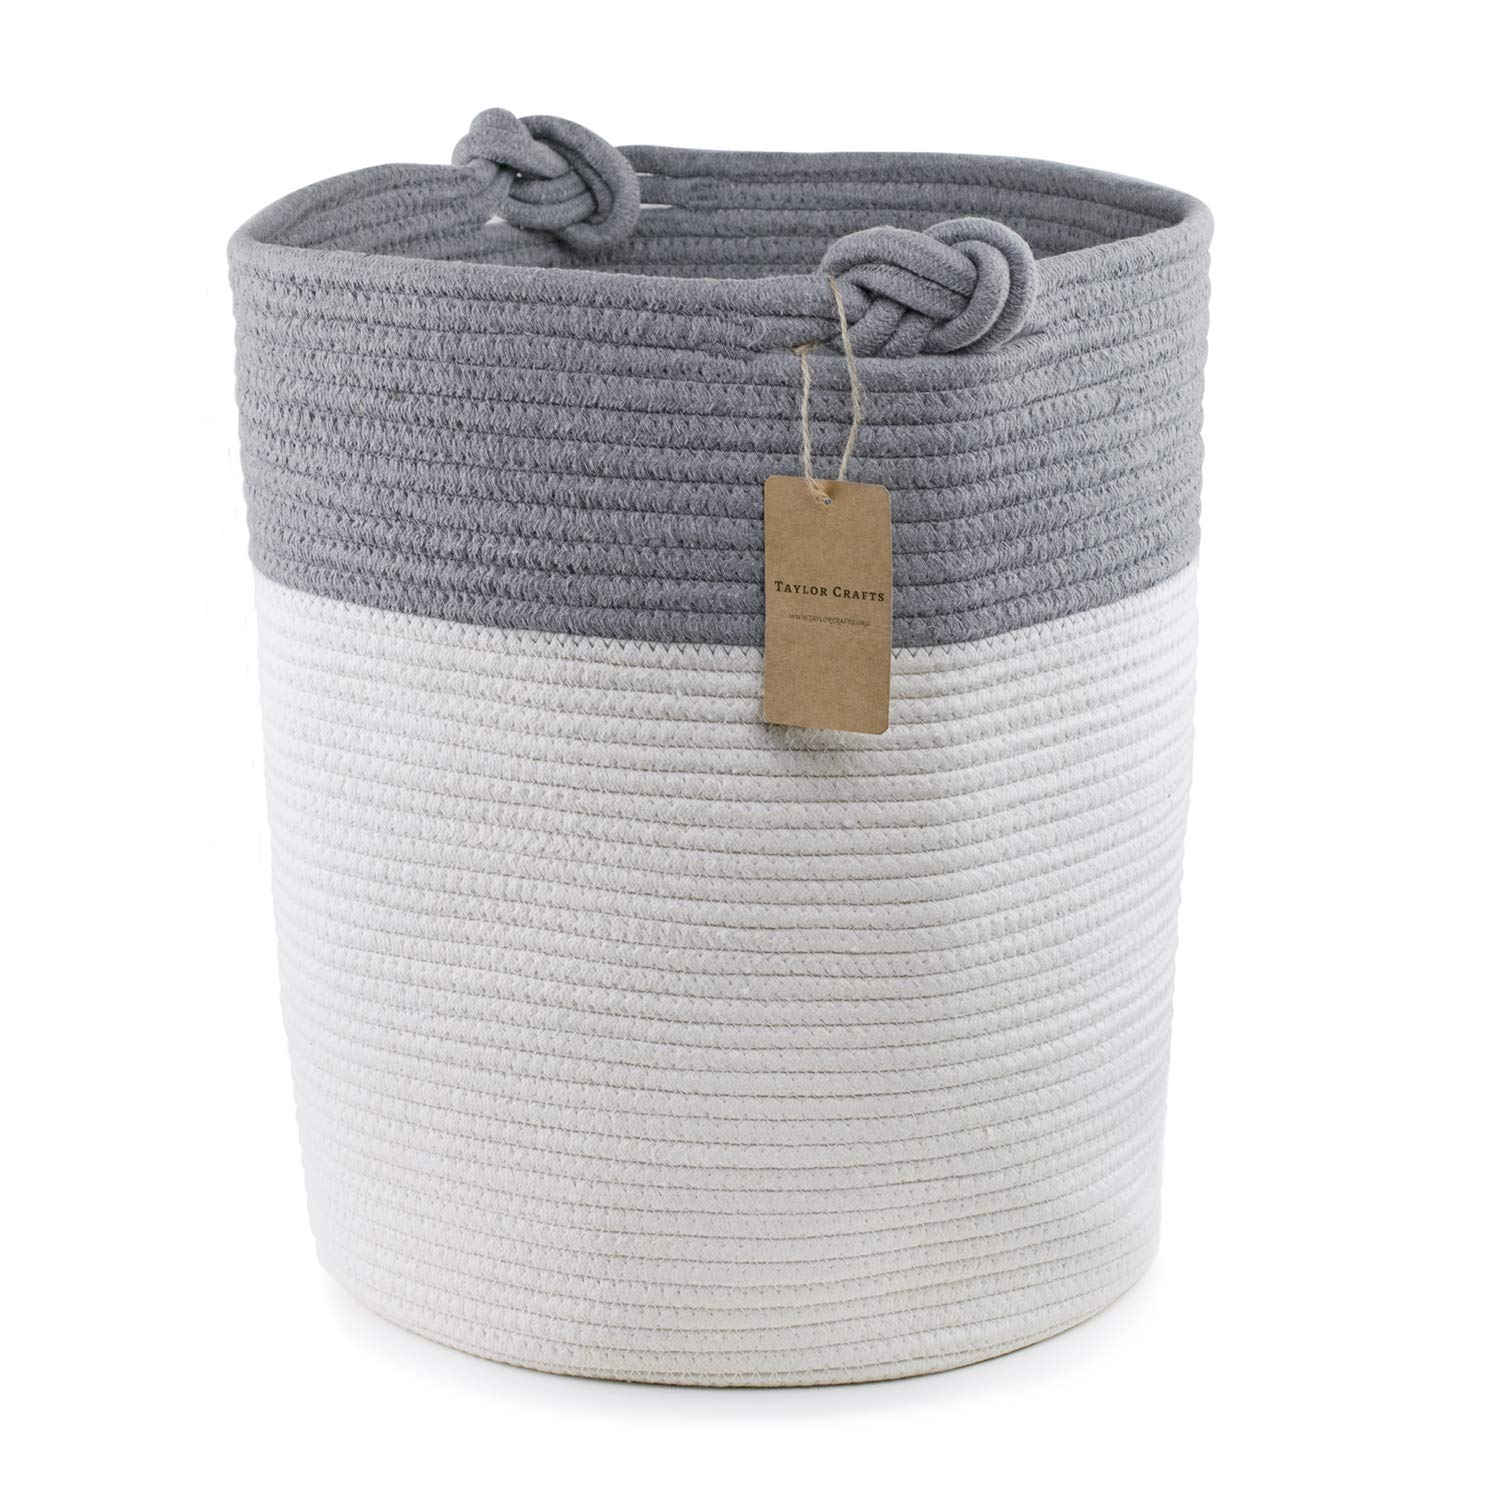 Extra Large Cotton Rope Basket. 18inx15in Size - Perfect as a Storage Basket or Laundry Basket, Toy Storage, Blankets Storage. TaylorCrafts taylorBasket1